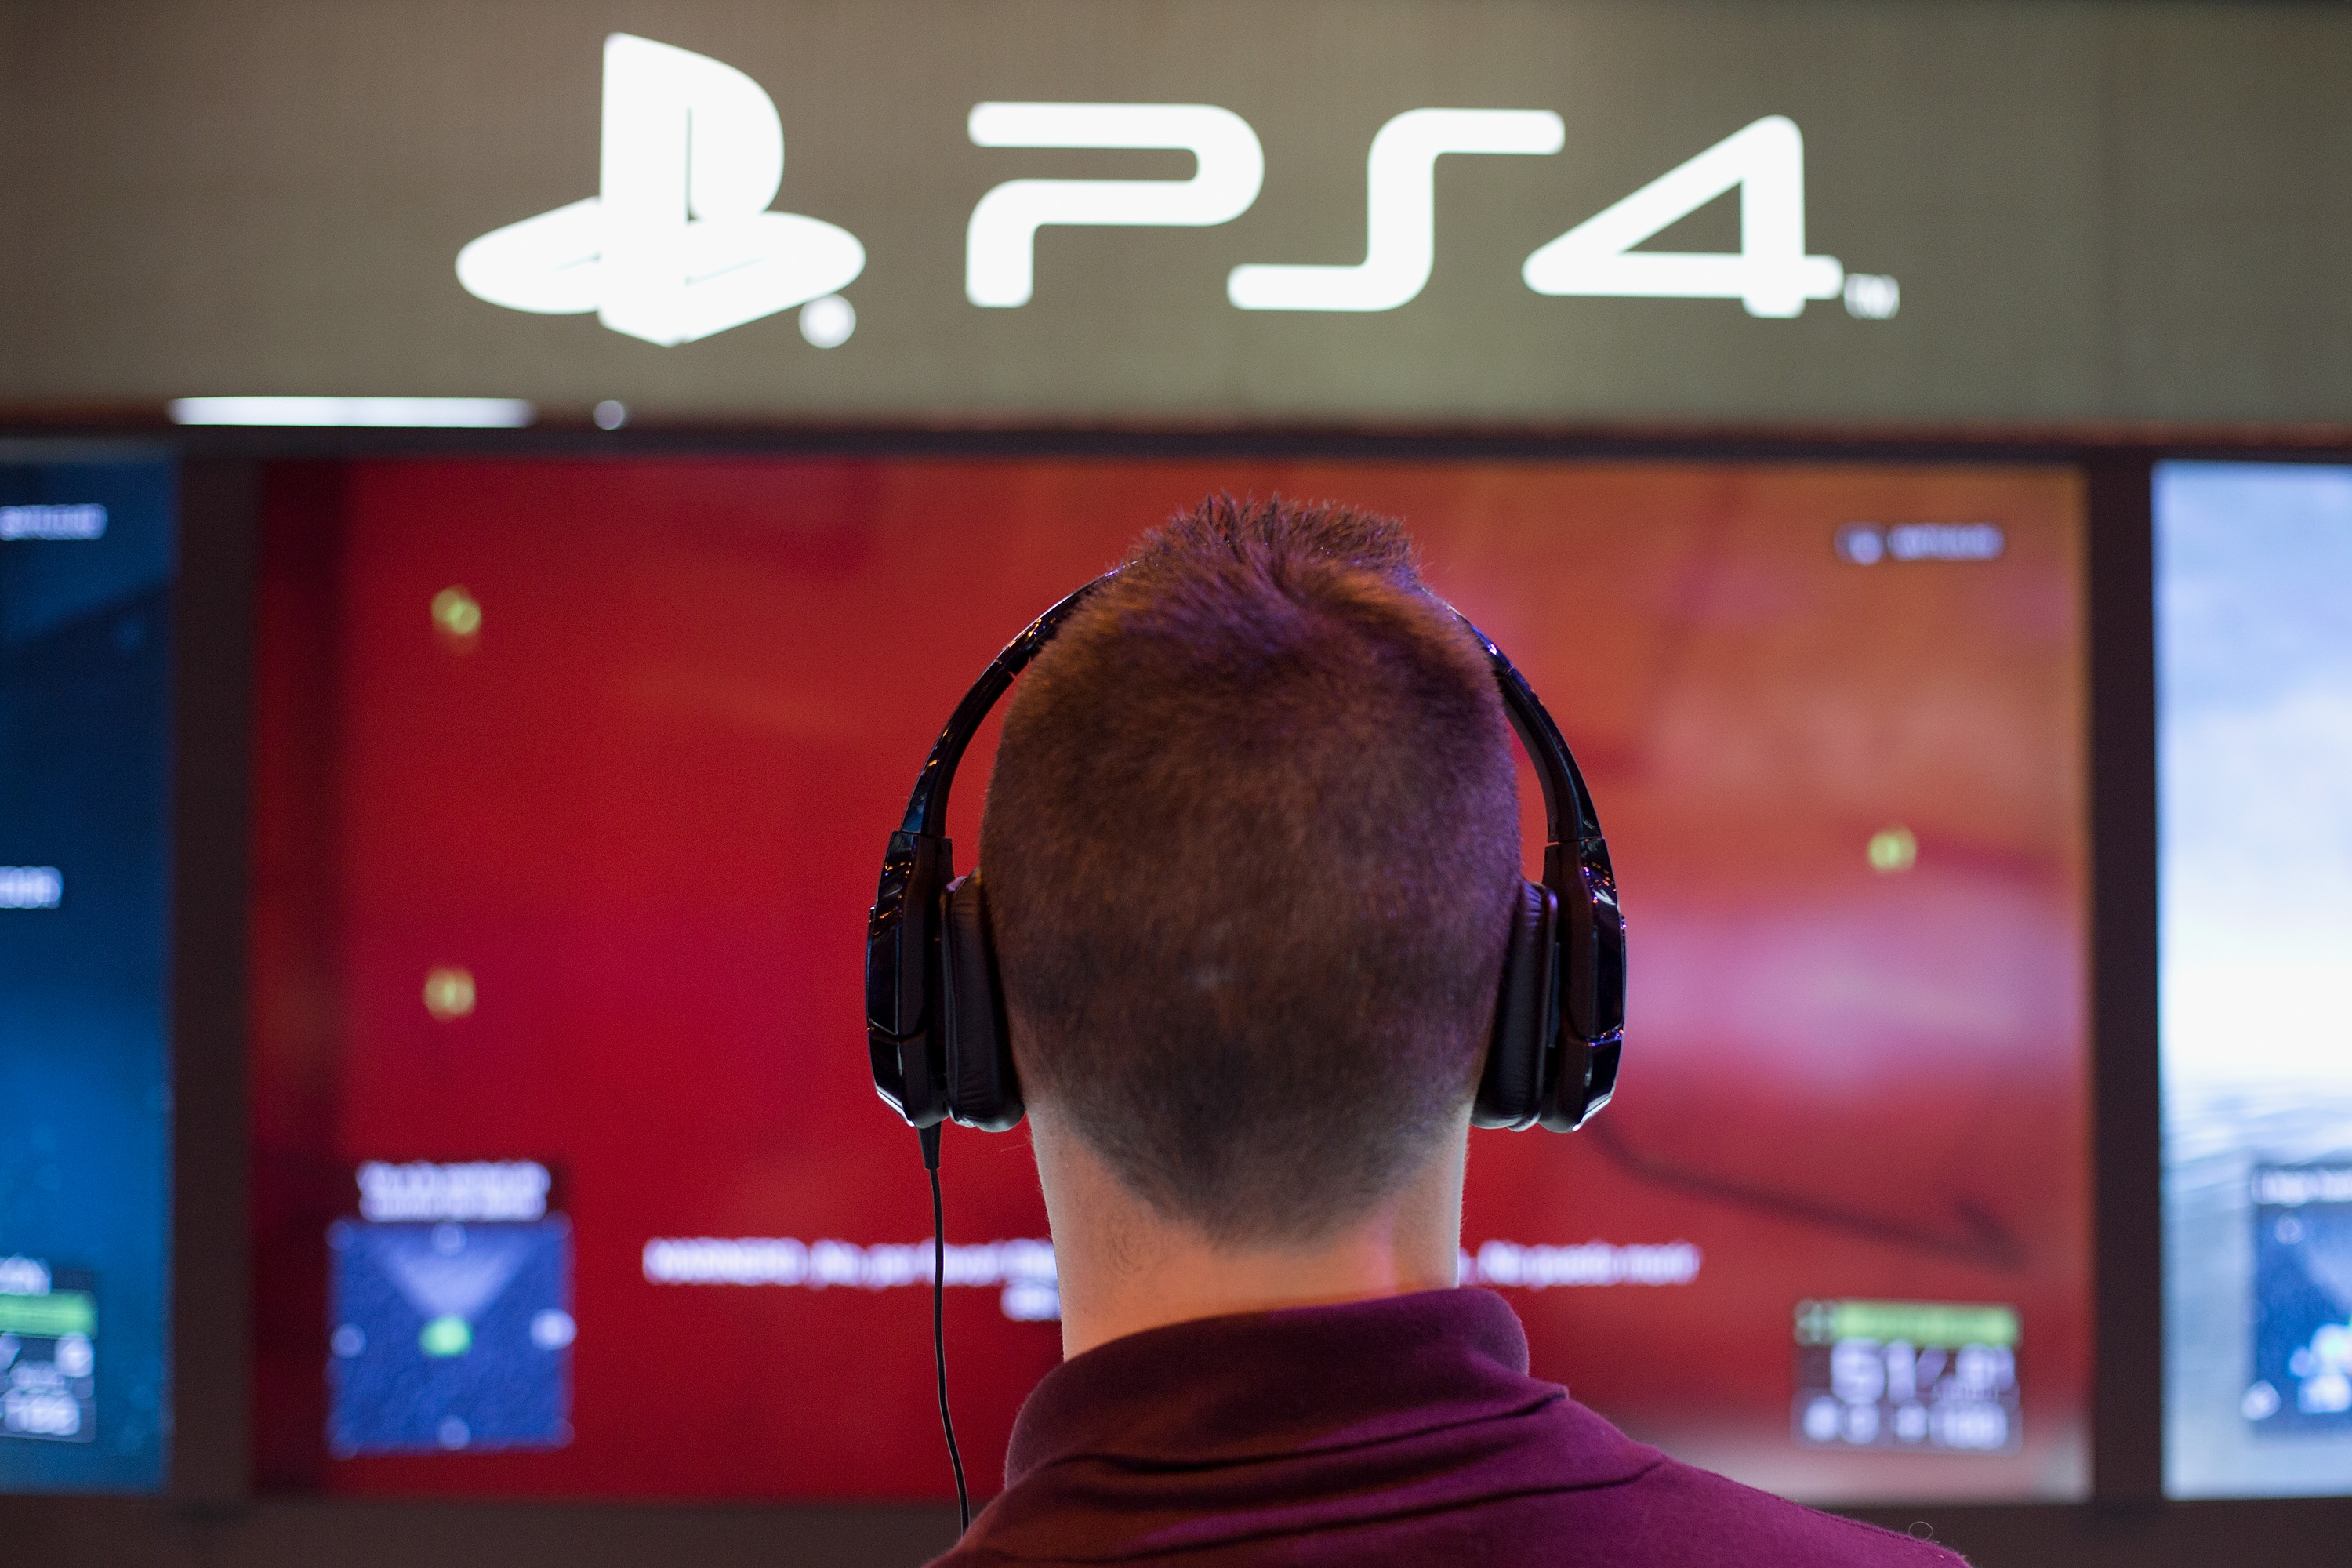 A man plays on a Playstation 4 at Madrid Games Week in IFEMA on November 9, 2013 in Madrid, Spain.